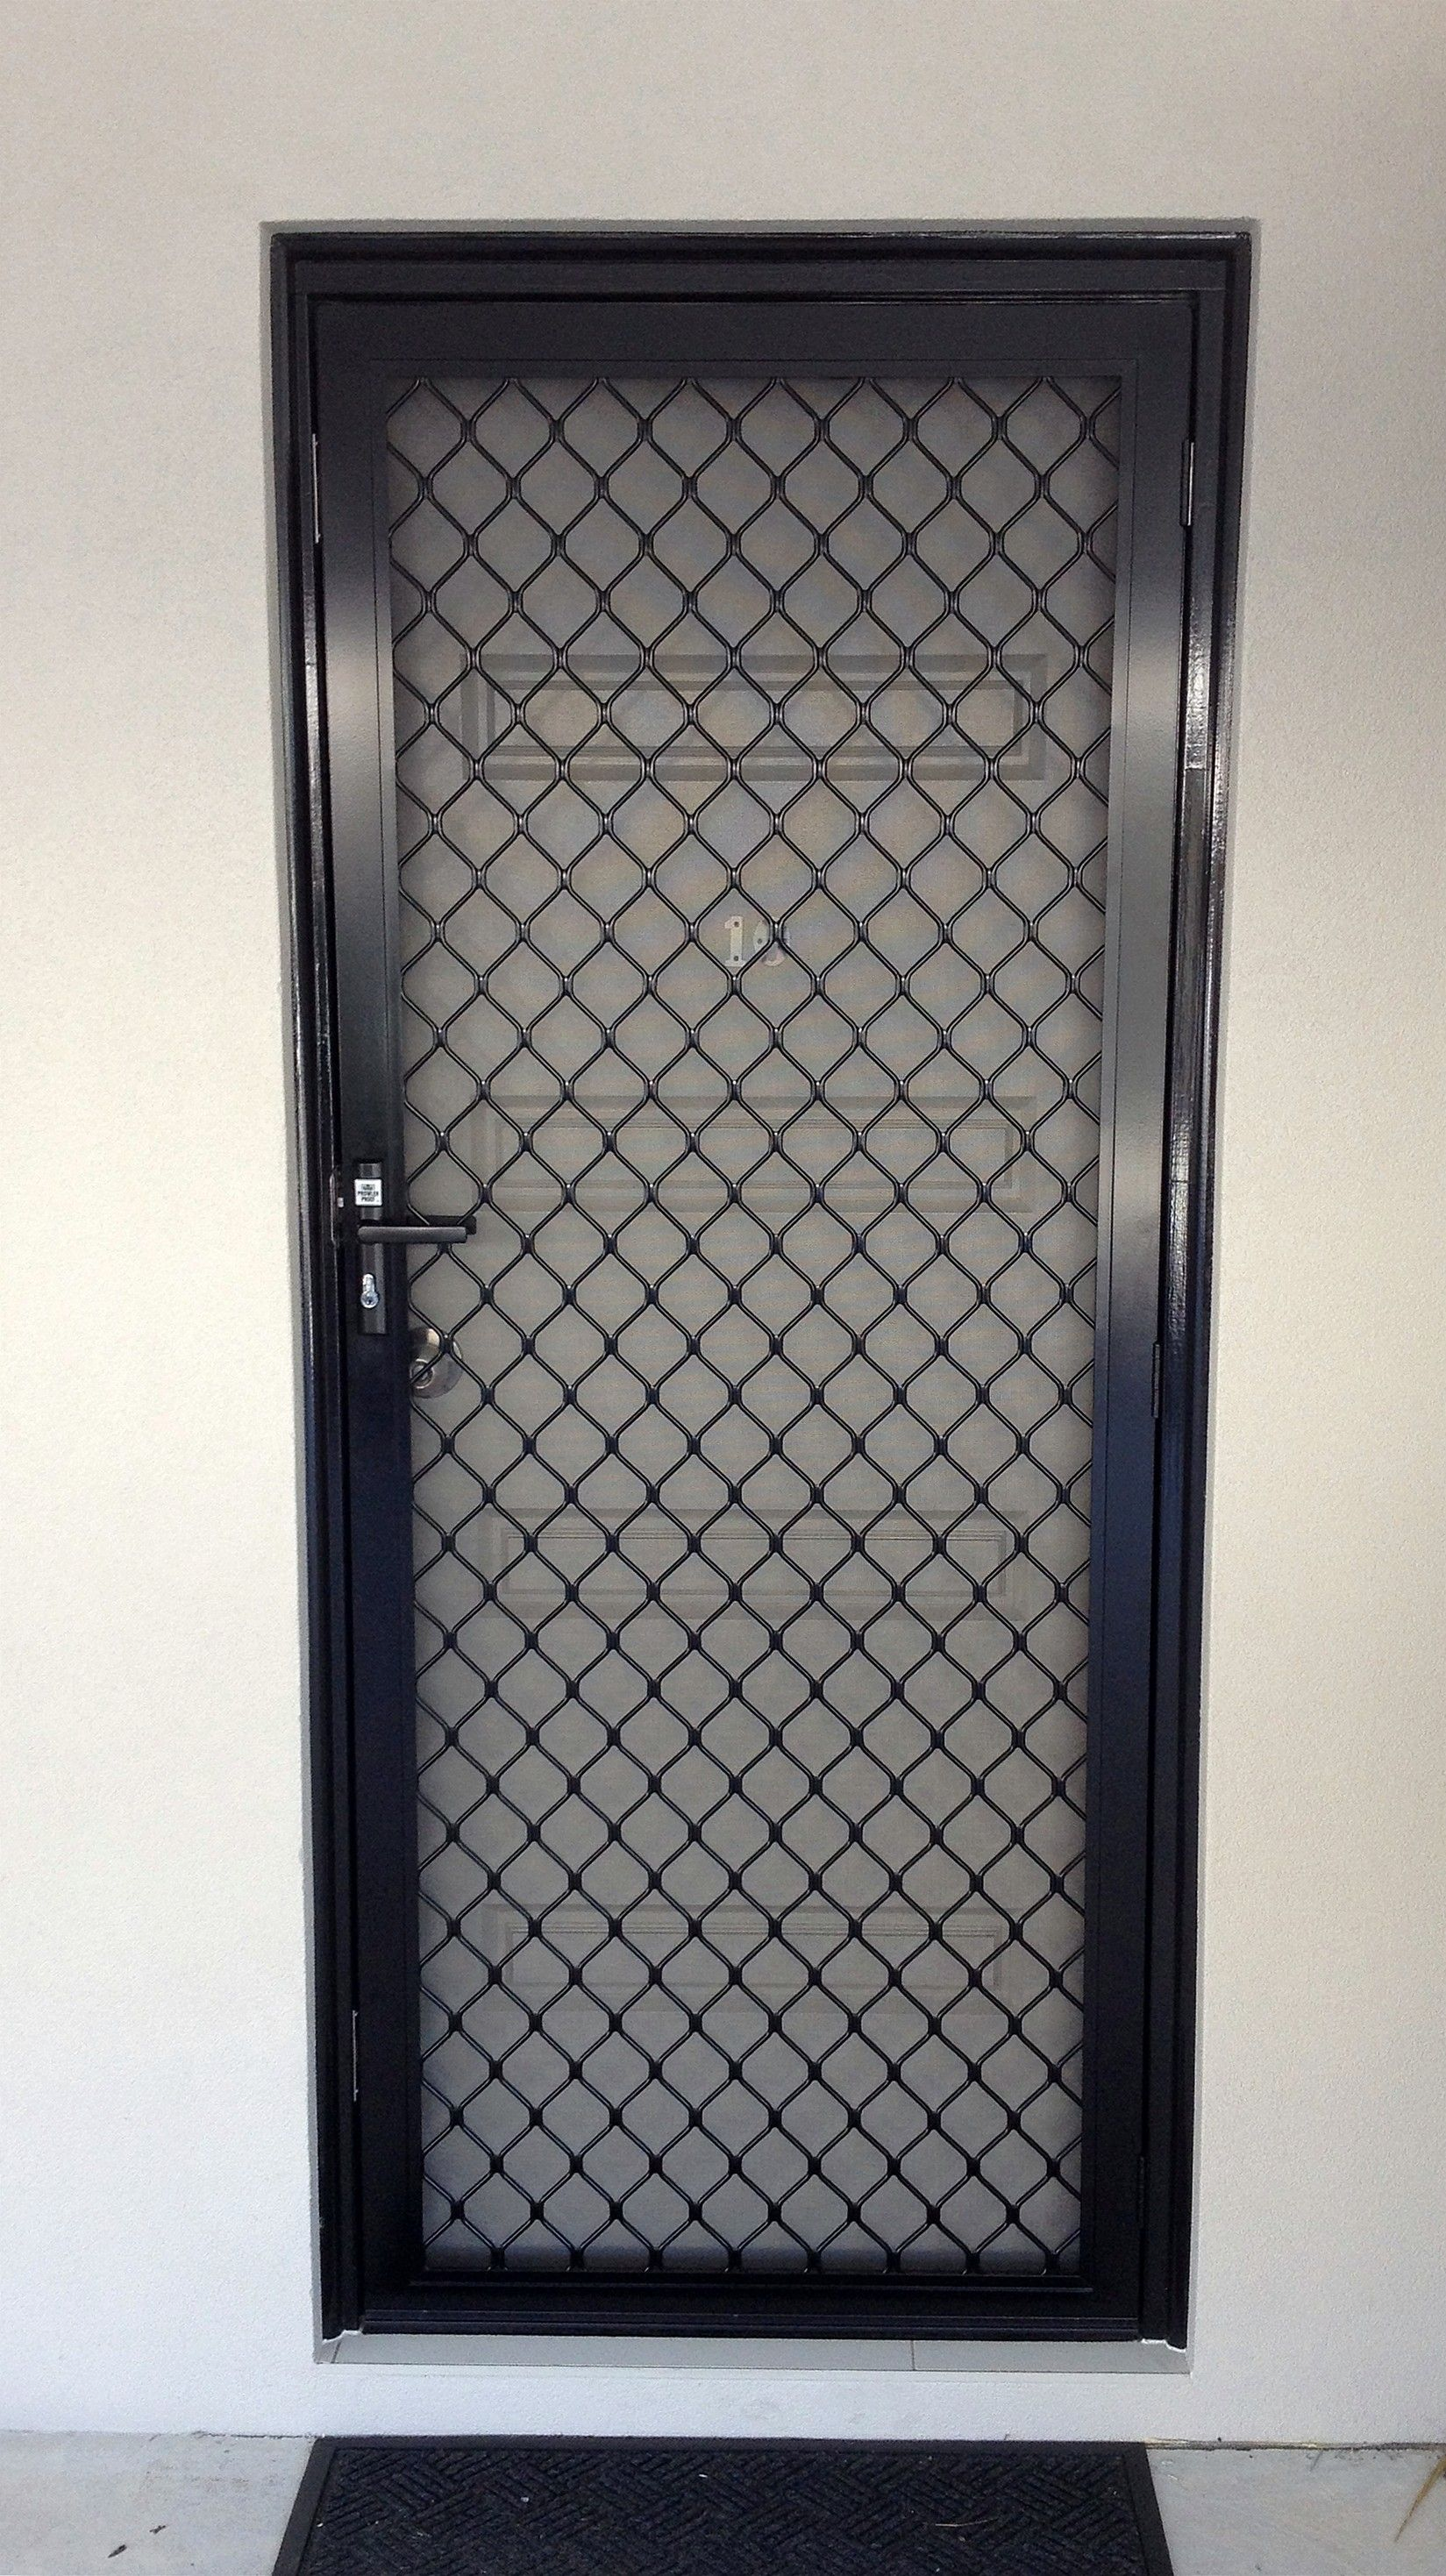 Black Diamond Grille Security Screen Door & Black Diamond Grille Security Screen Door | Wrought Iron | Pinterest ...